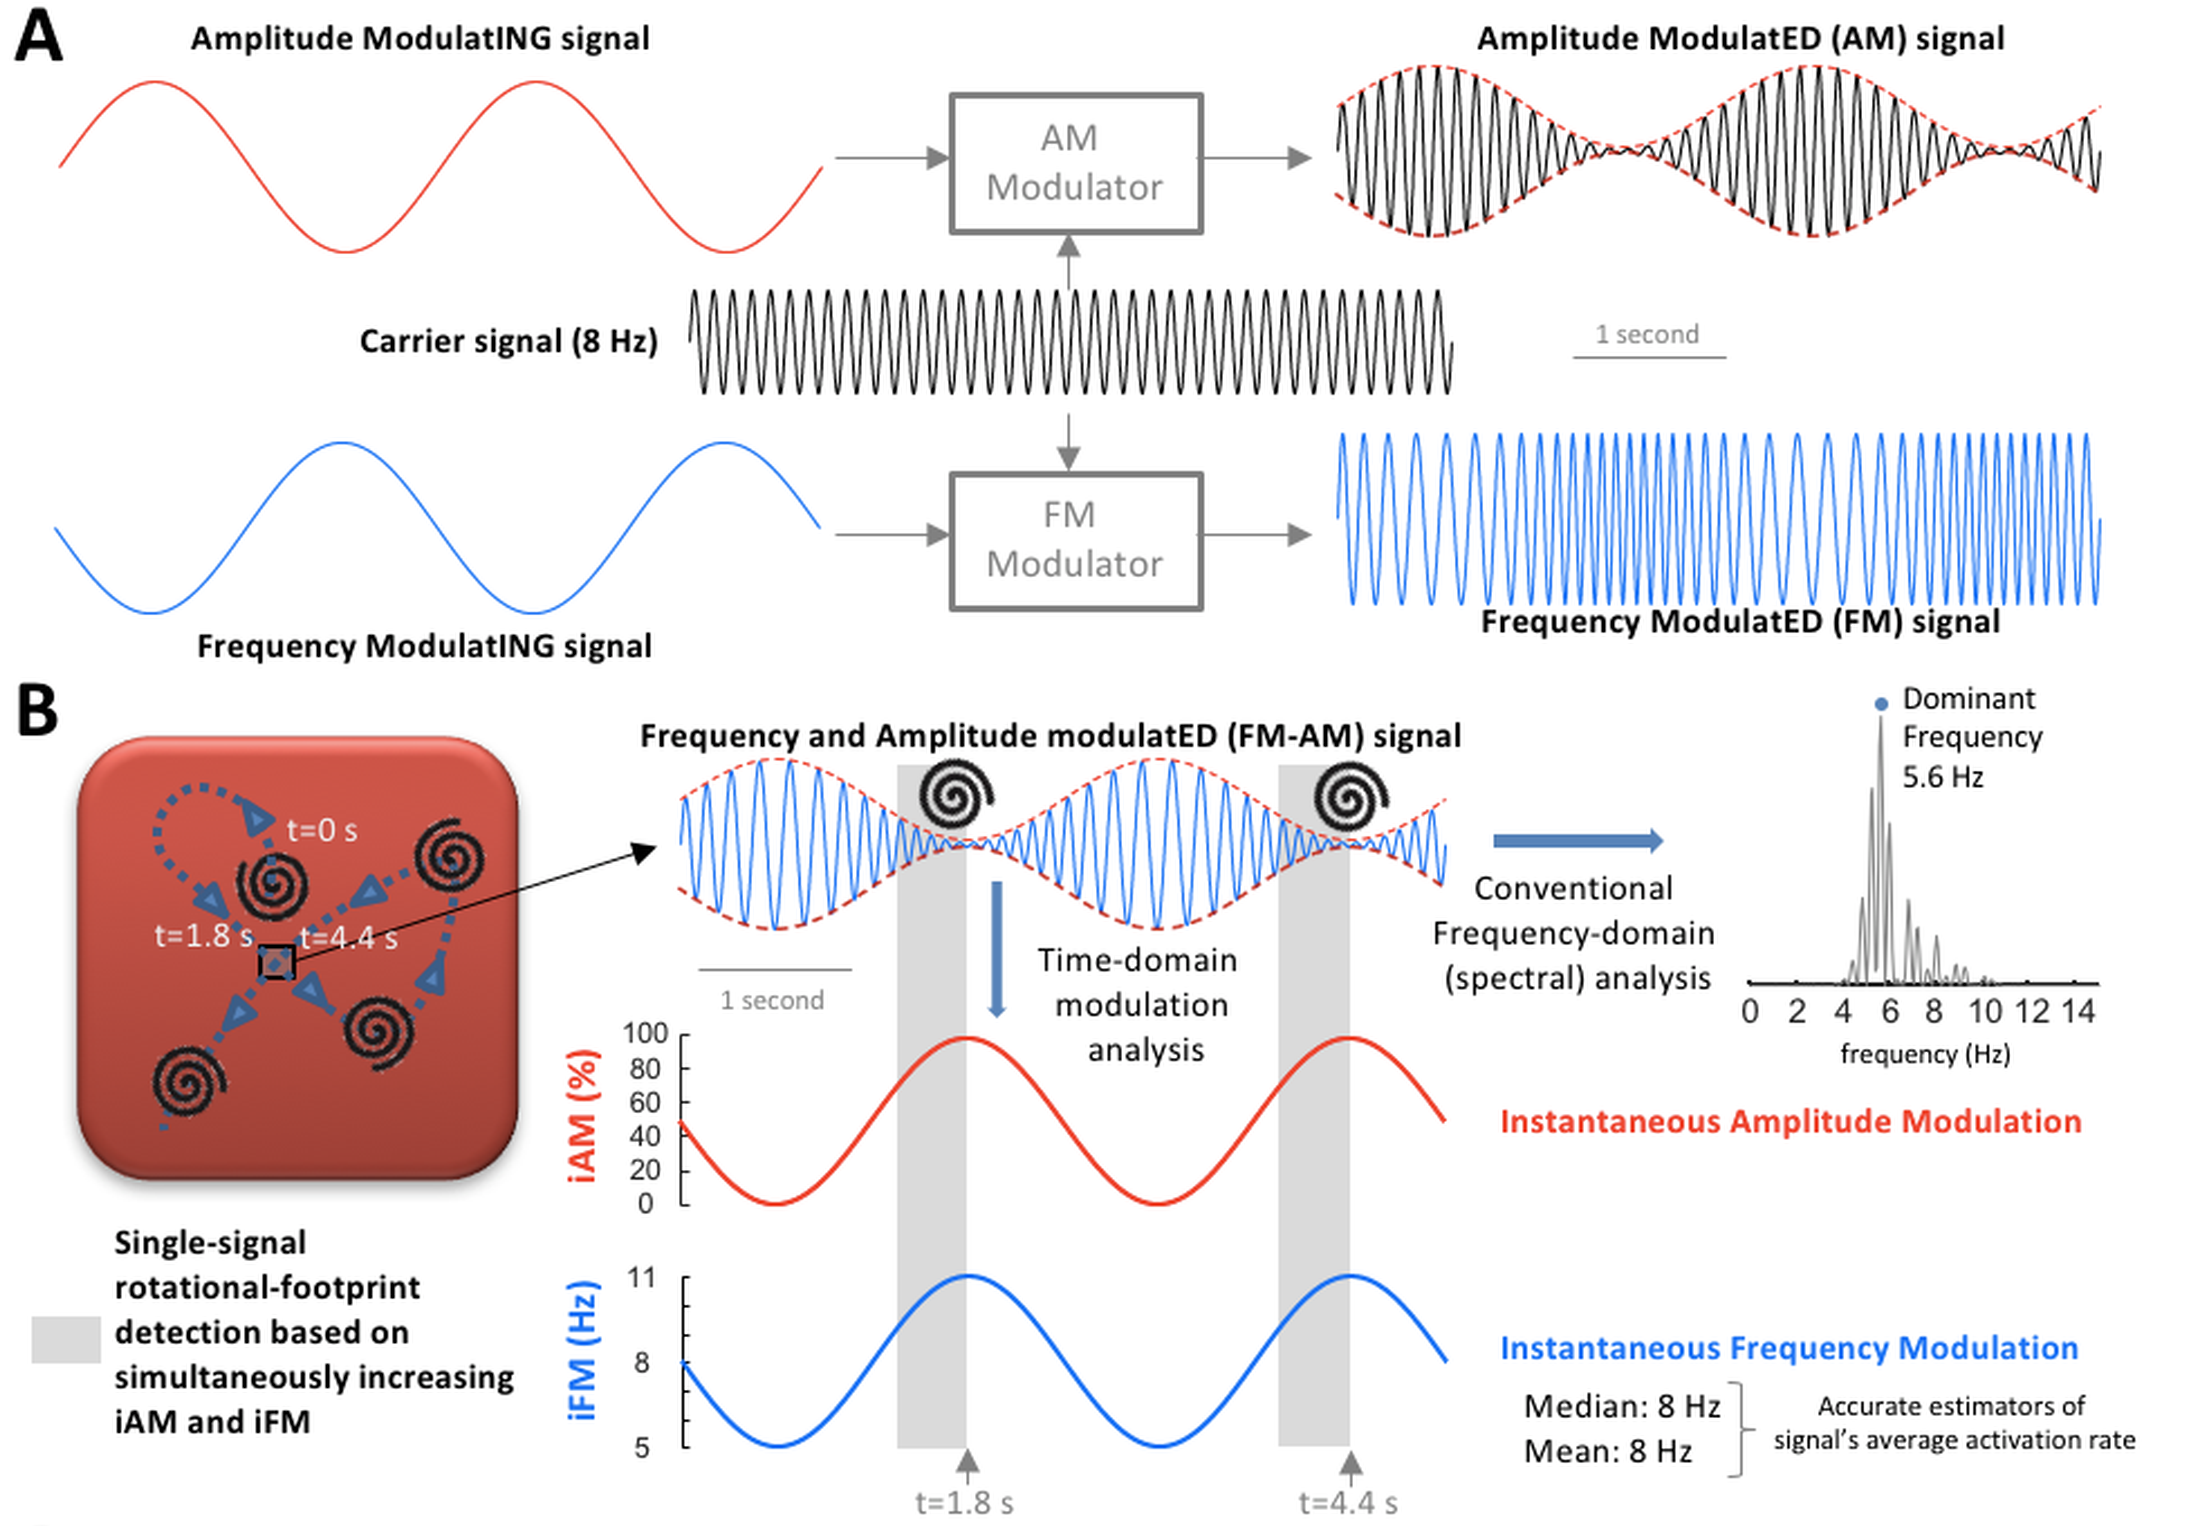 Amplitude modulation (AM) / frequency modulation n (FM) concept